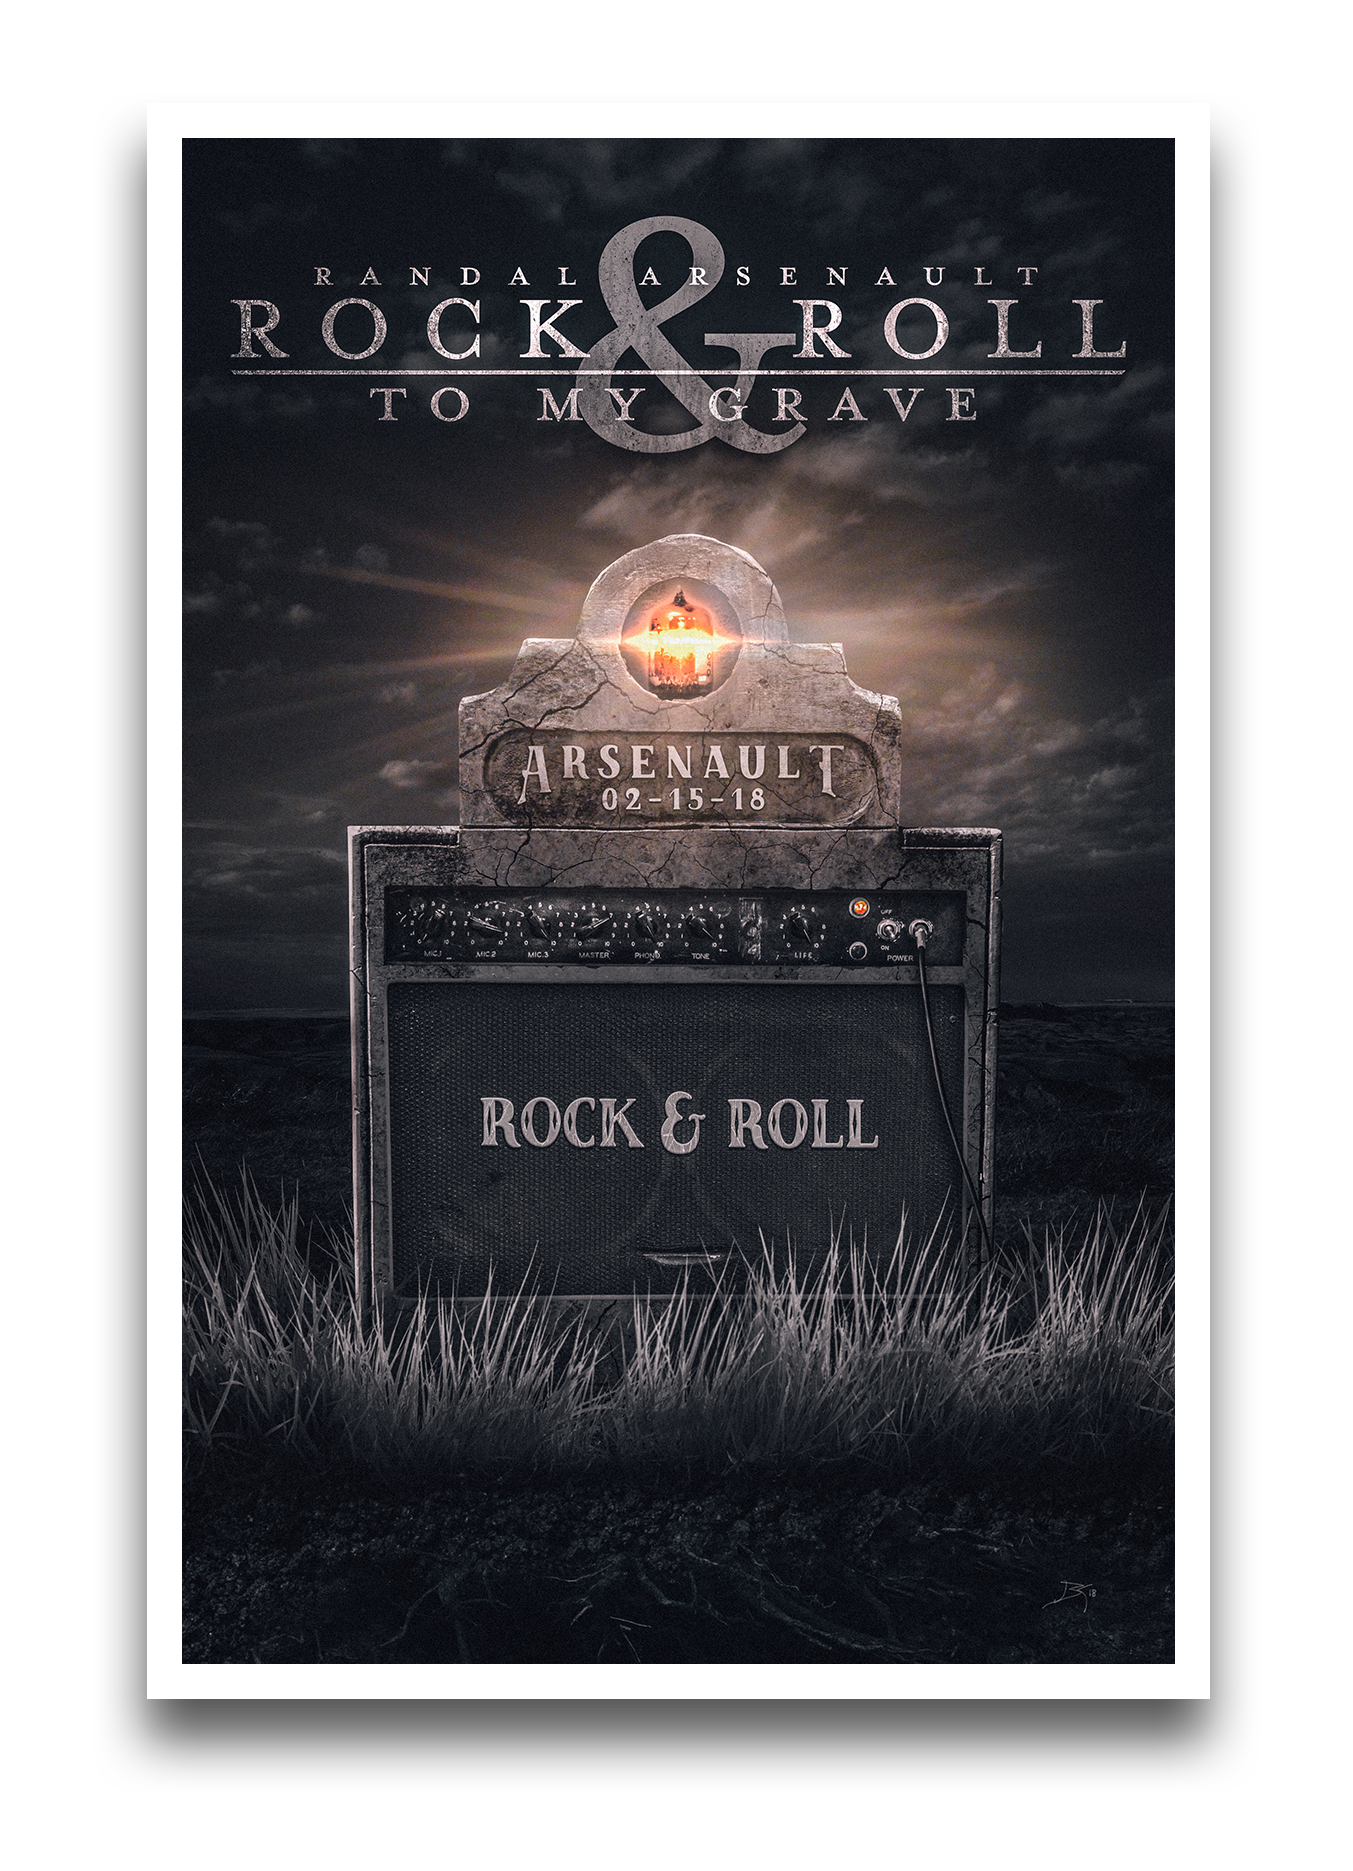 Rock & Roll to My Grave Poster - Be a Cancer Fighter - proceeds go to Canadian Cancer Society